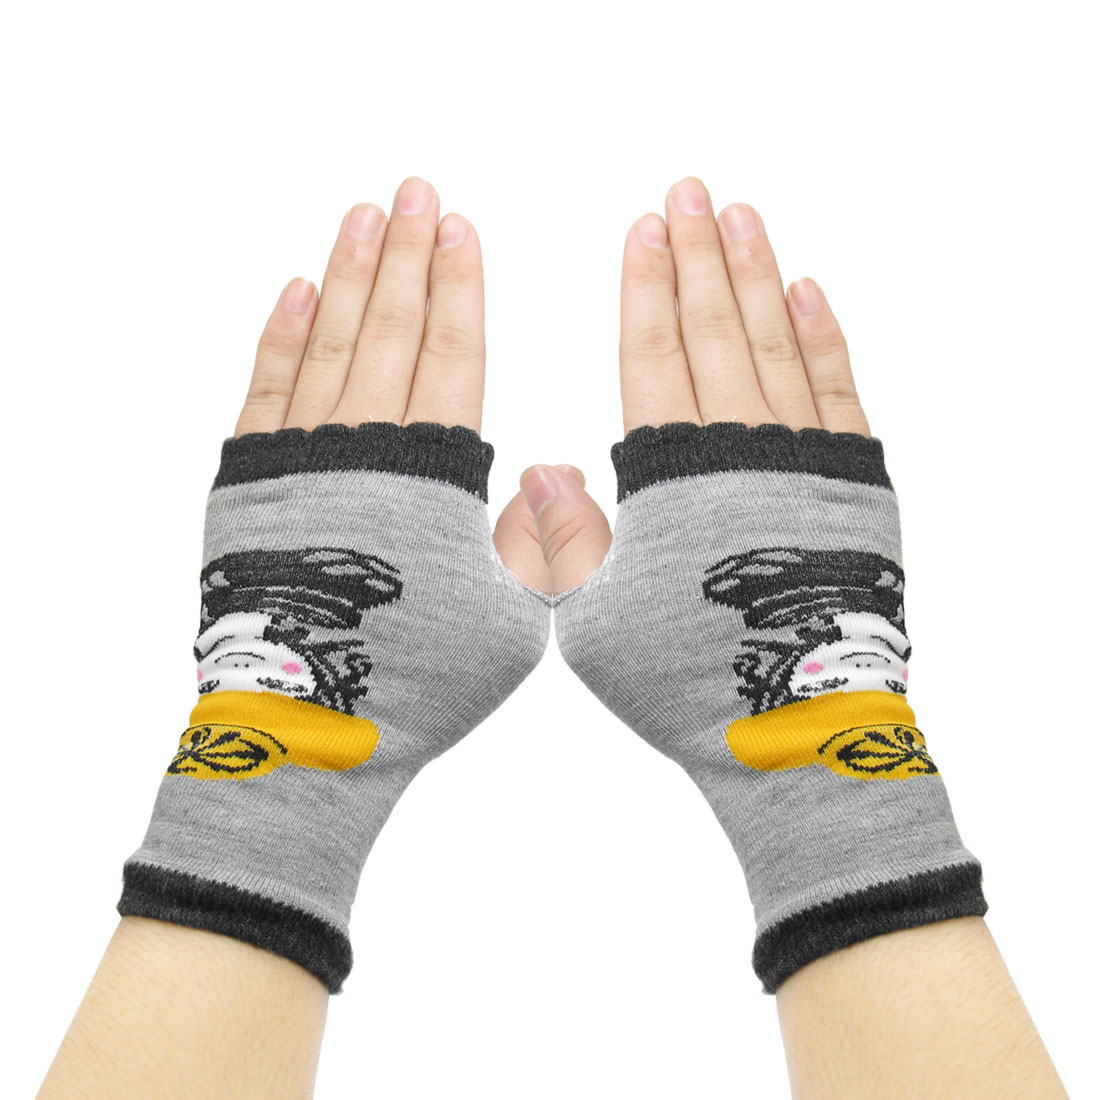 Women Sky Girl Prints Fingerless Mitten Knit Elastic Gloves Black Gray